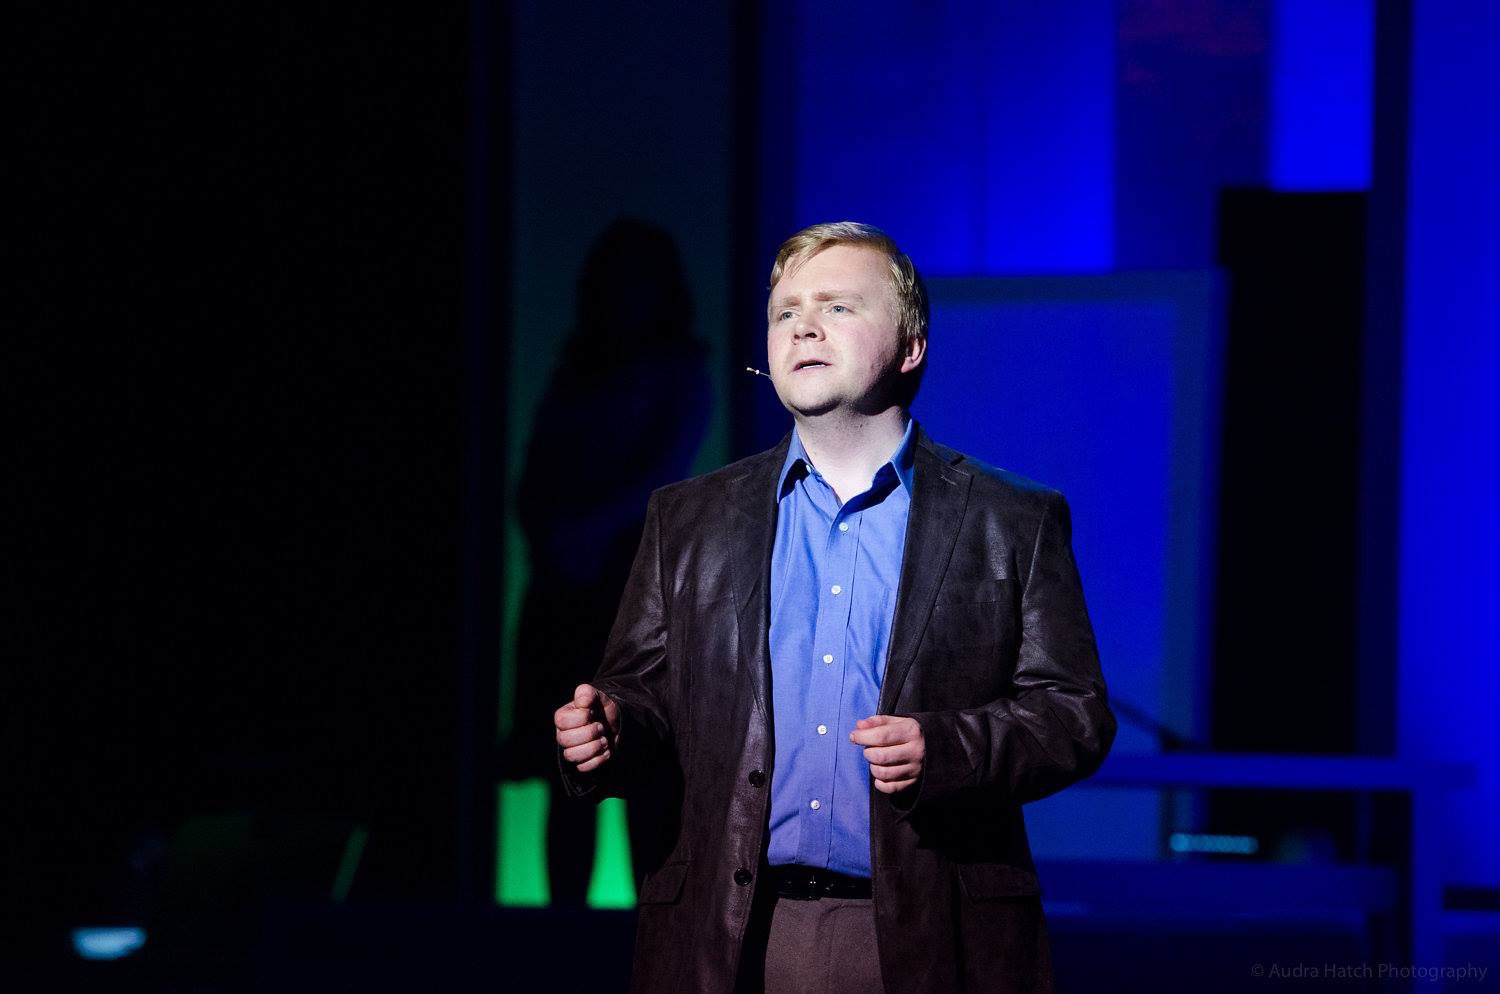 Caleb Lacy as Bobby (Robert) in Company. Image credit:  Audra Hatch .